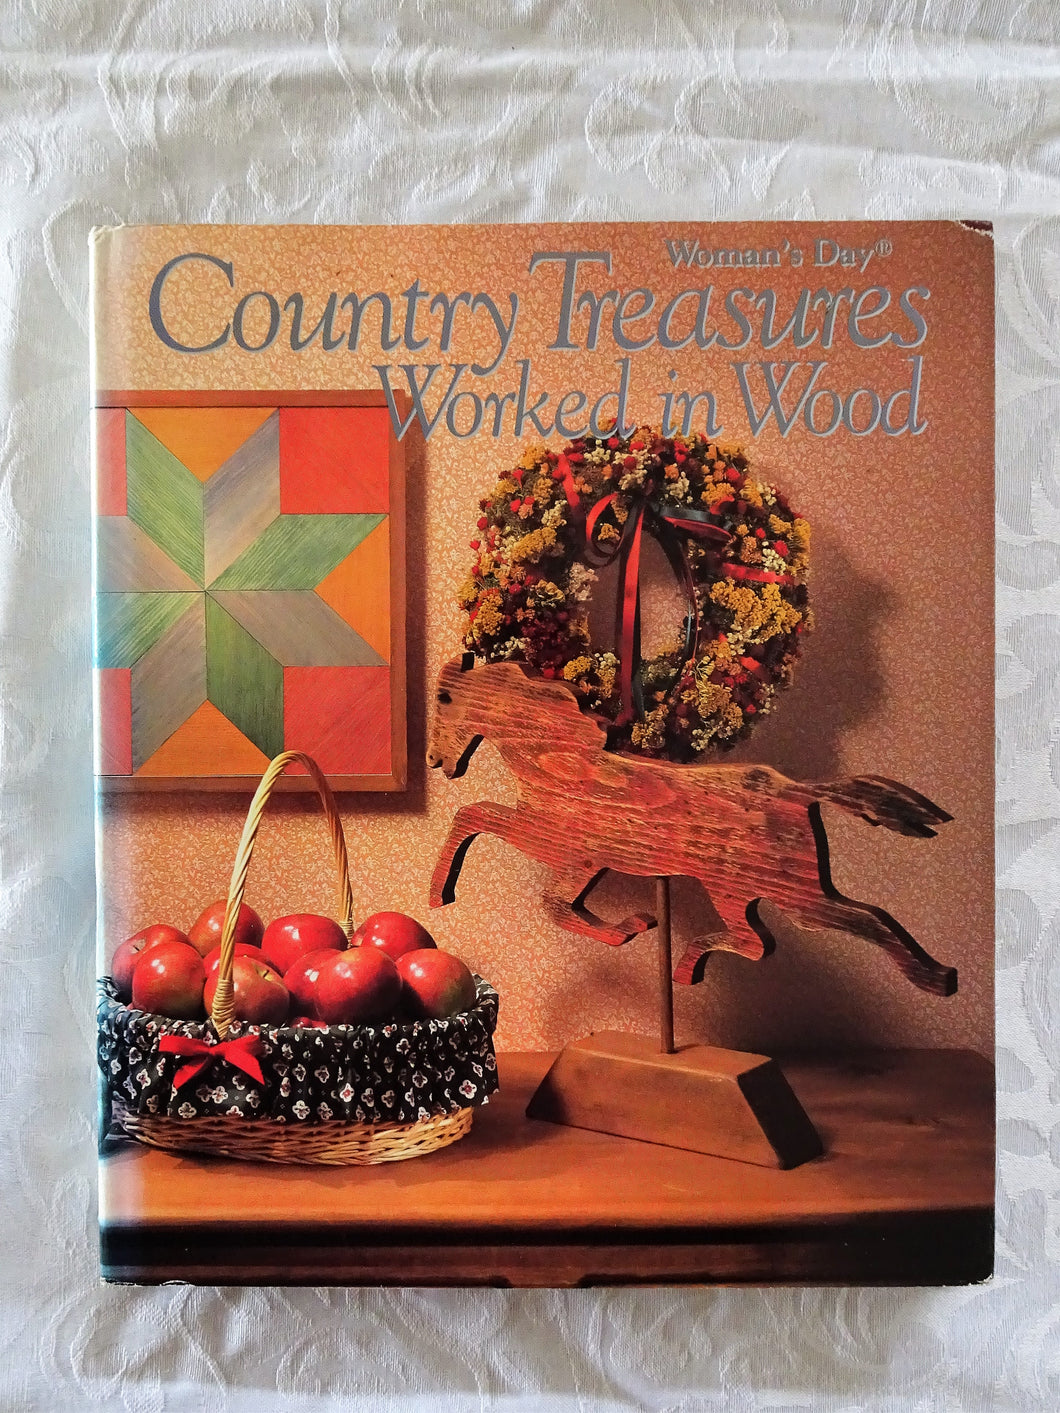 Country Treasures Worked In Wood by Woman's Day